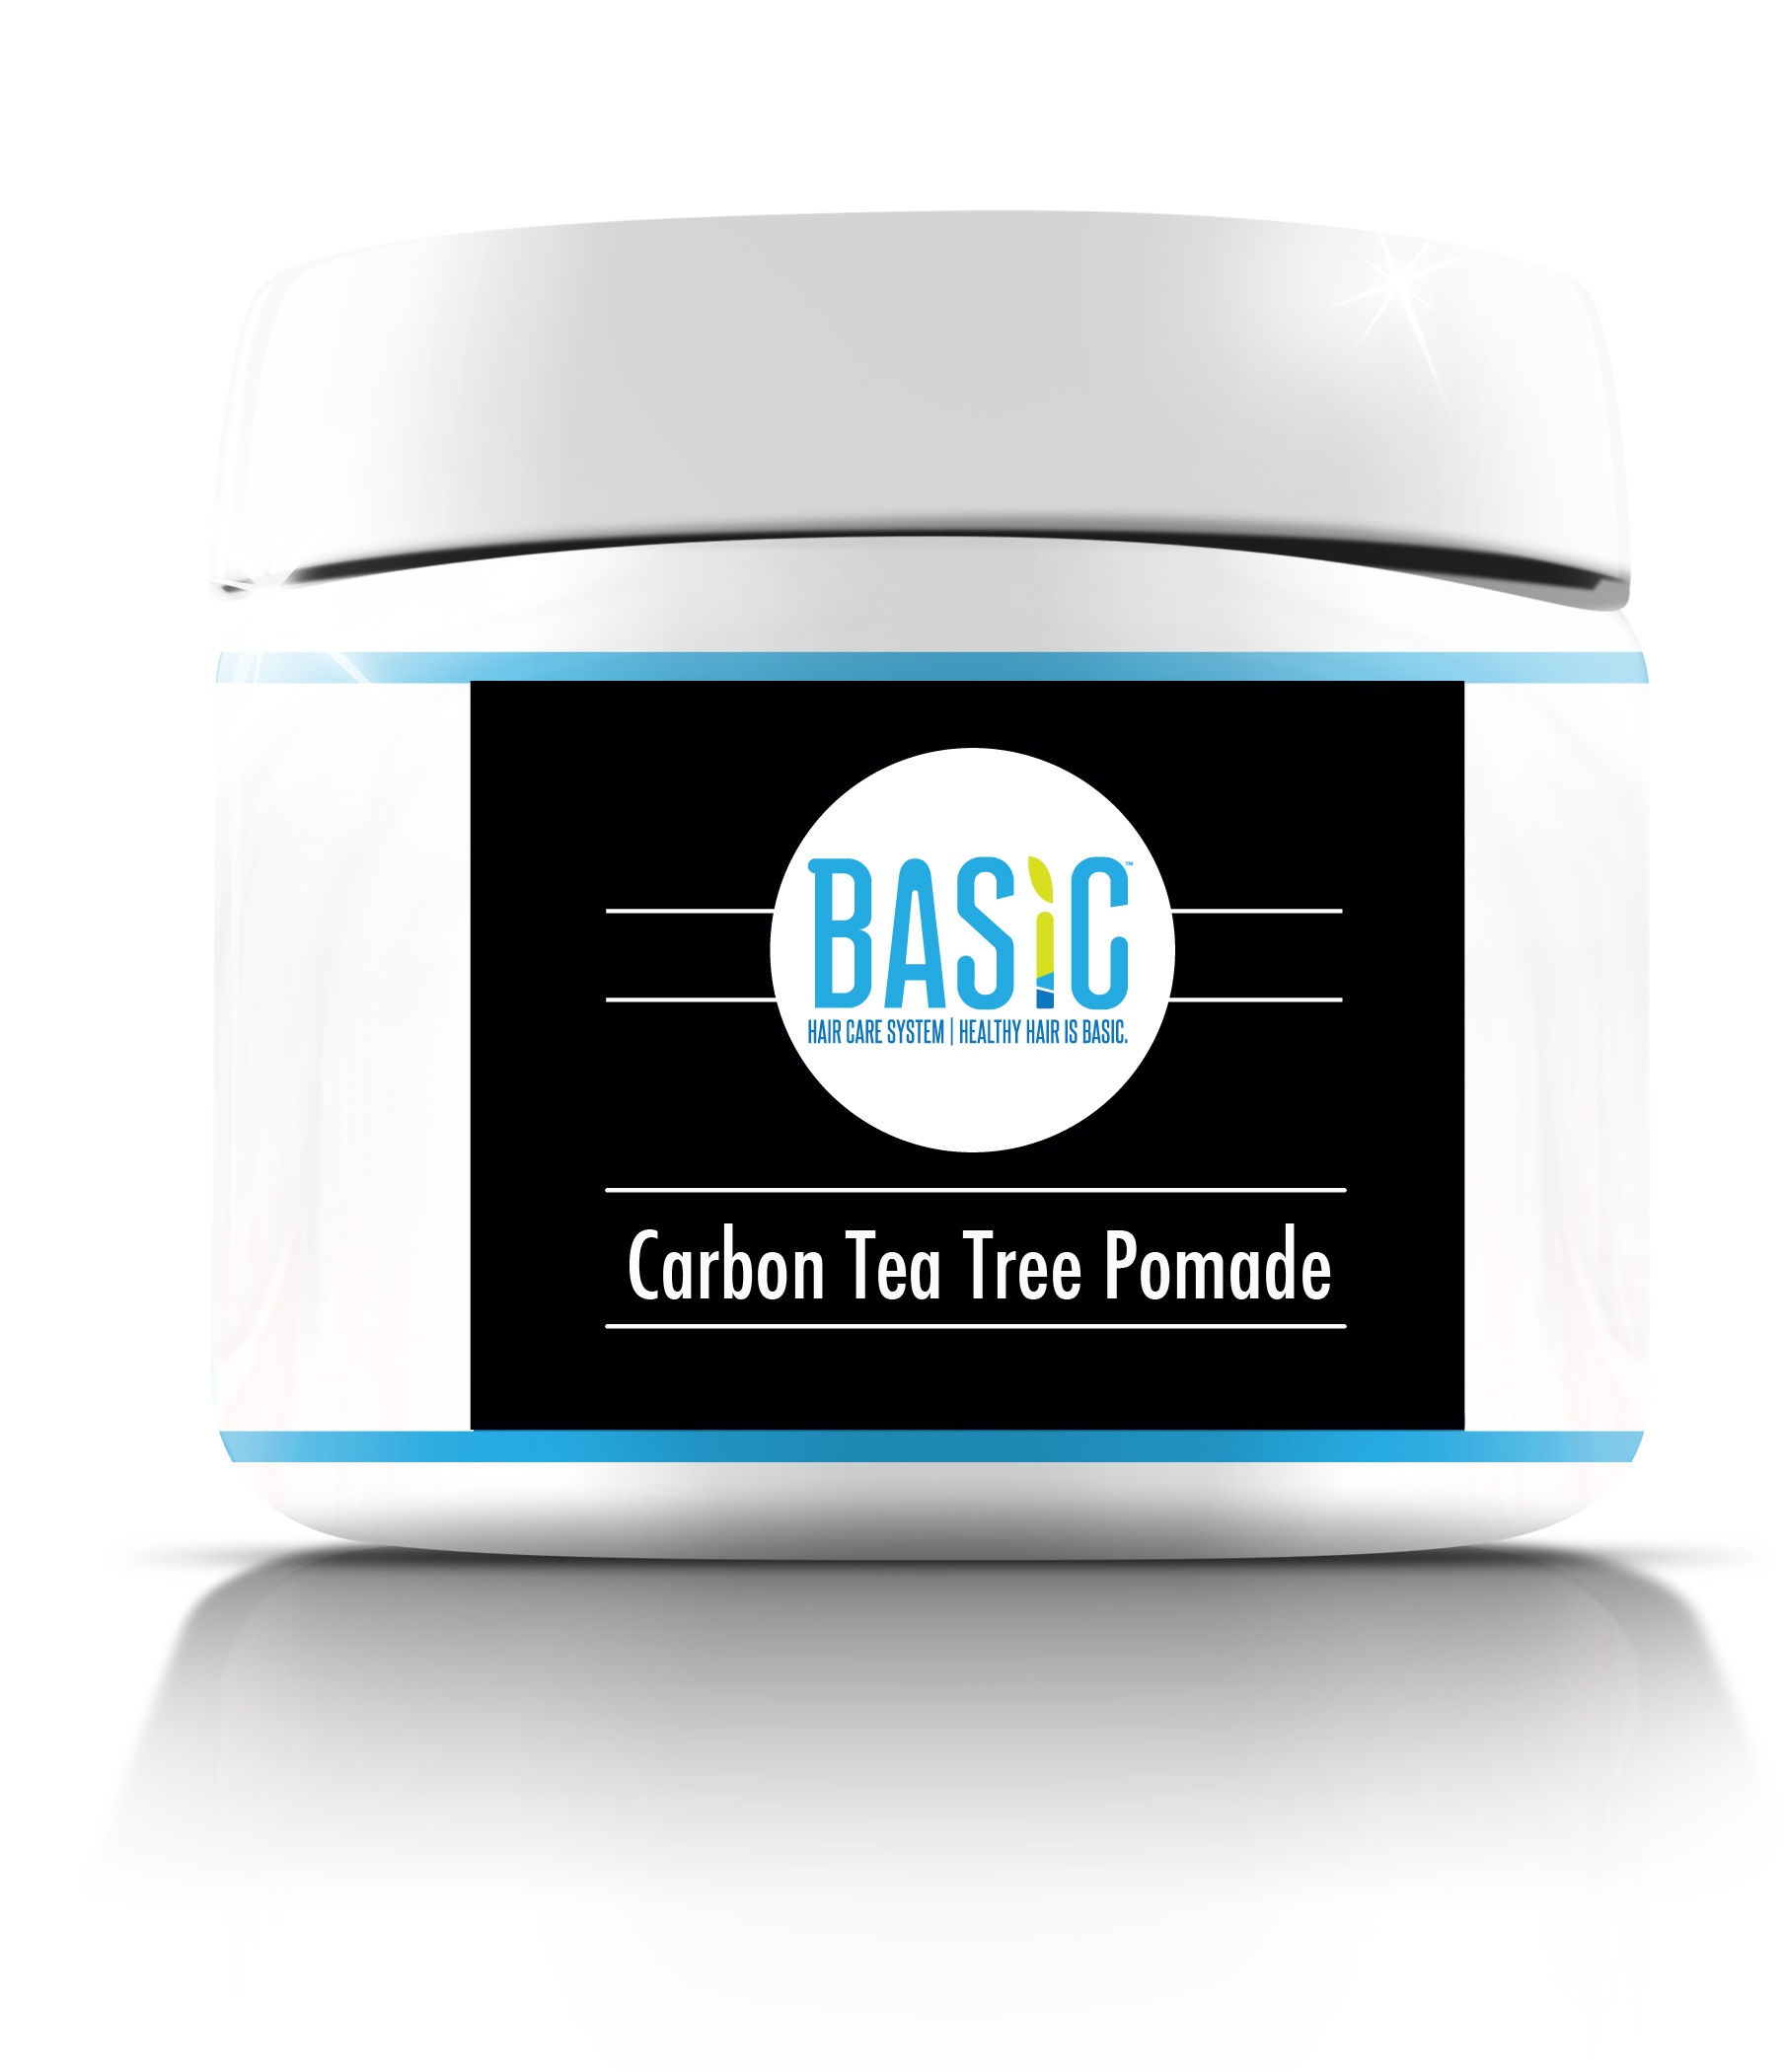 Carbon Tea Tree Pomade